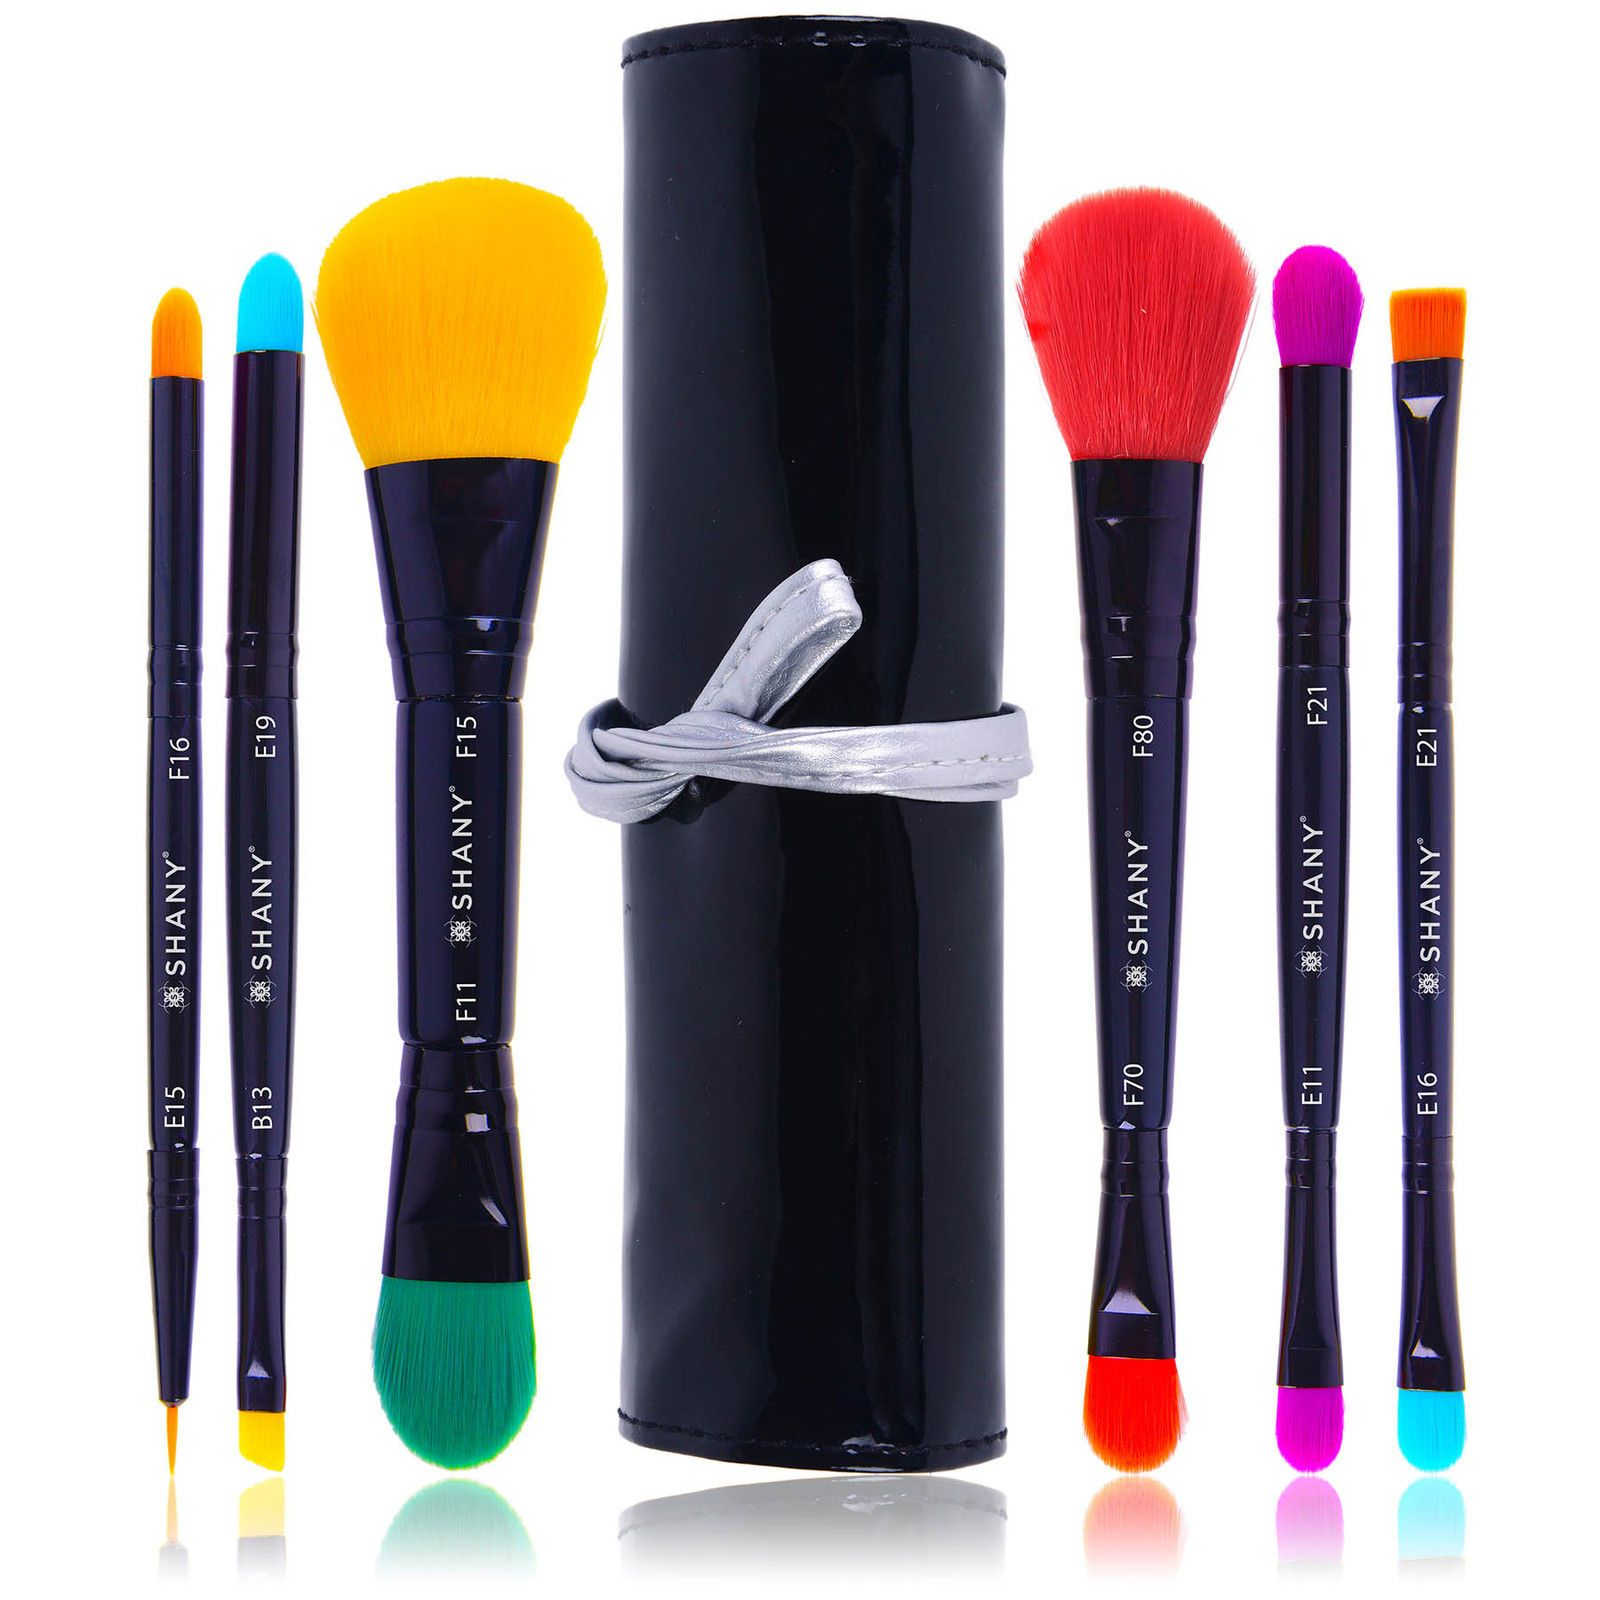 Details about SHANY LUNA 6 PC Double Sided Travel Brush